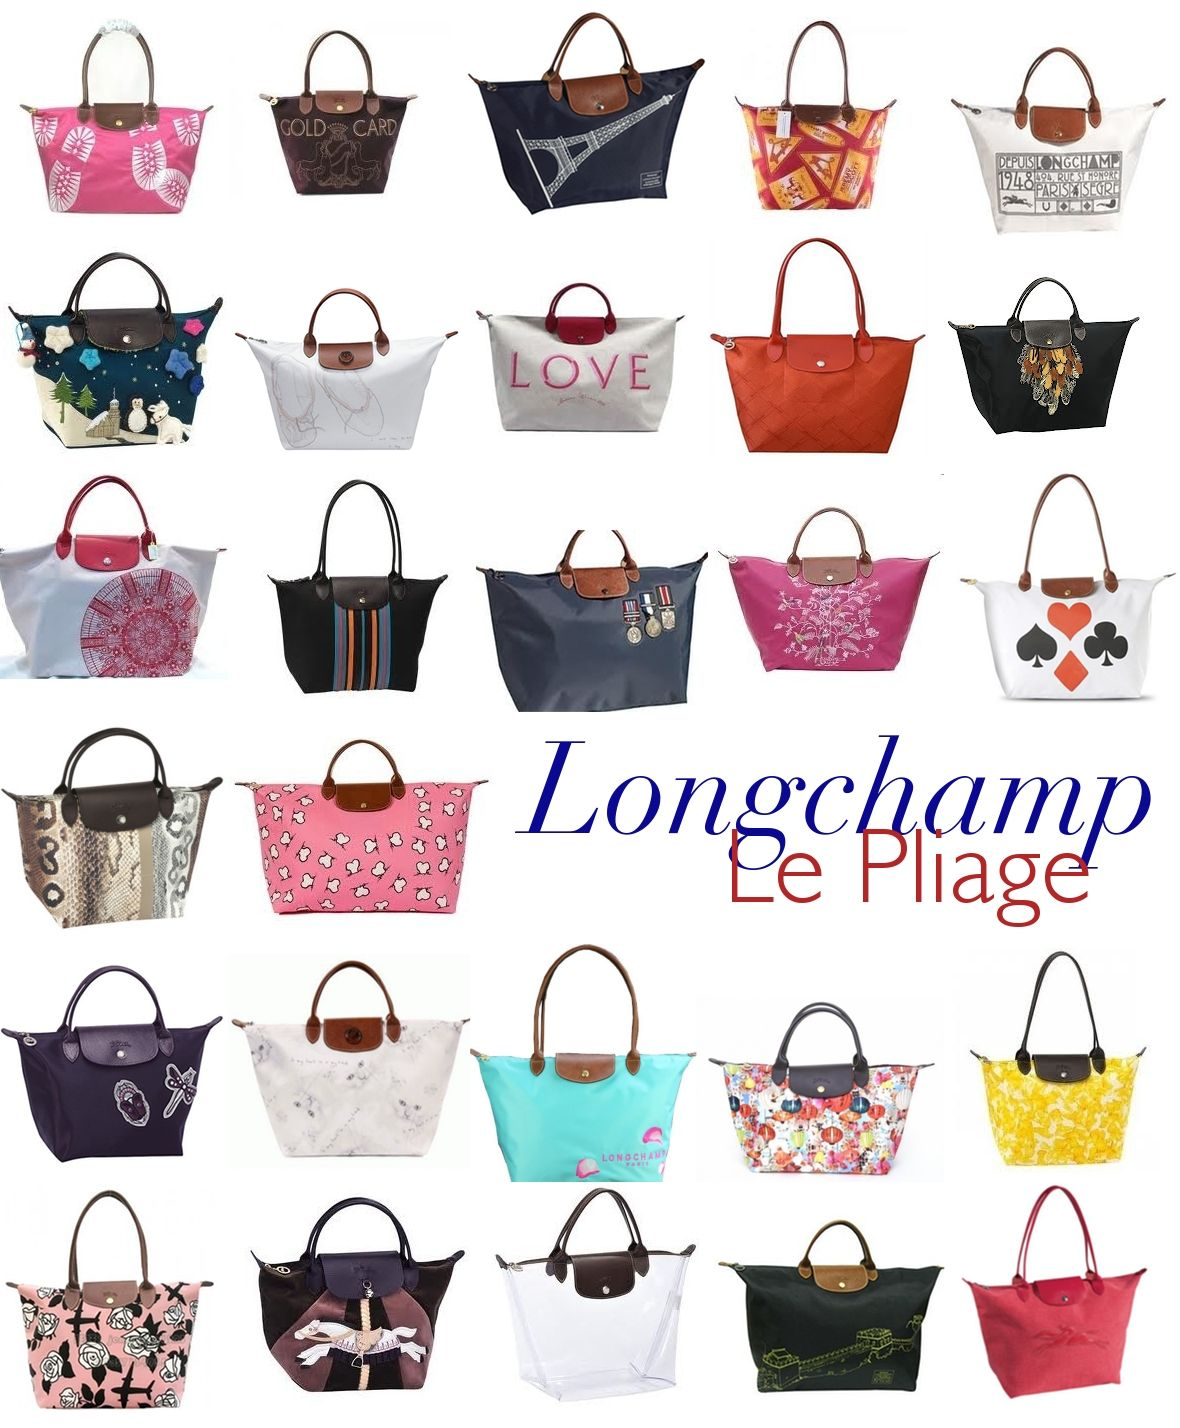 6190558cf67 Longchamp Le Pliage tote | Designer handbags in 2019 | Fashion ...